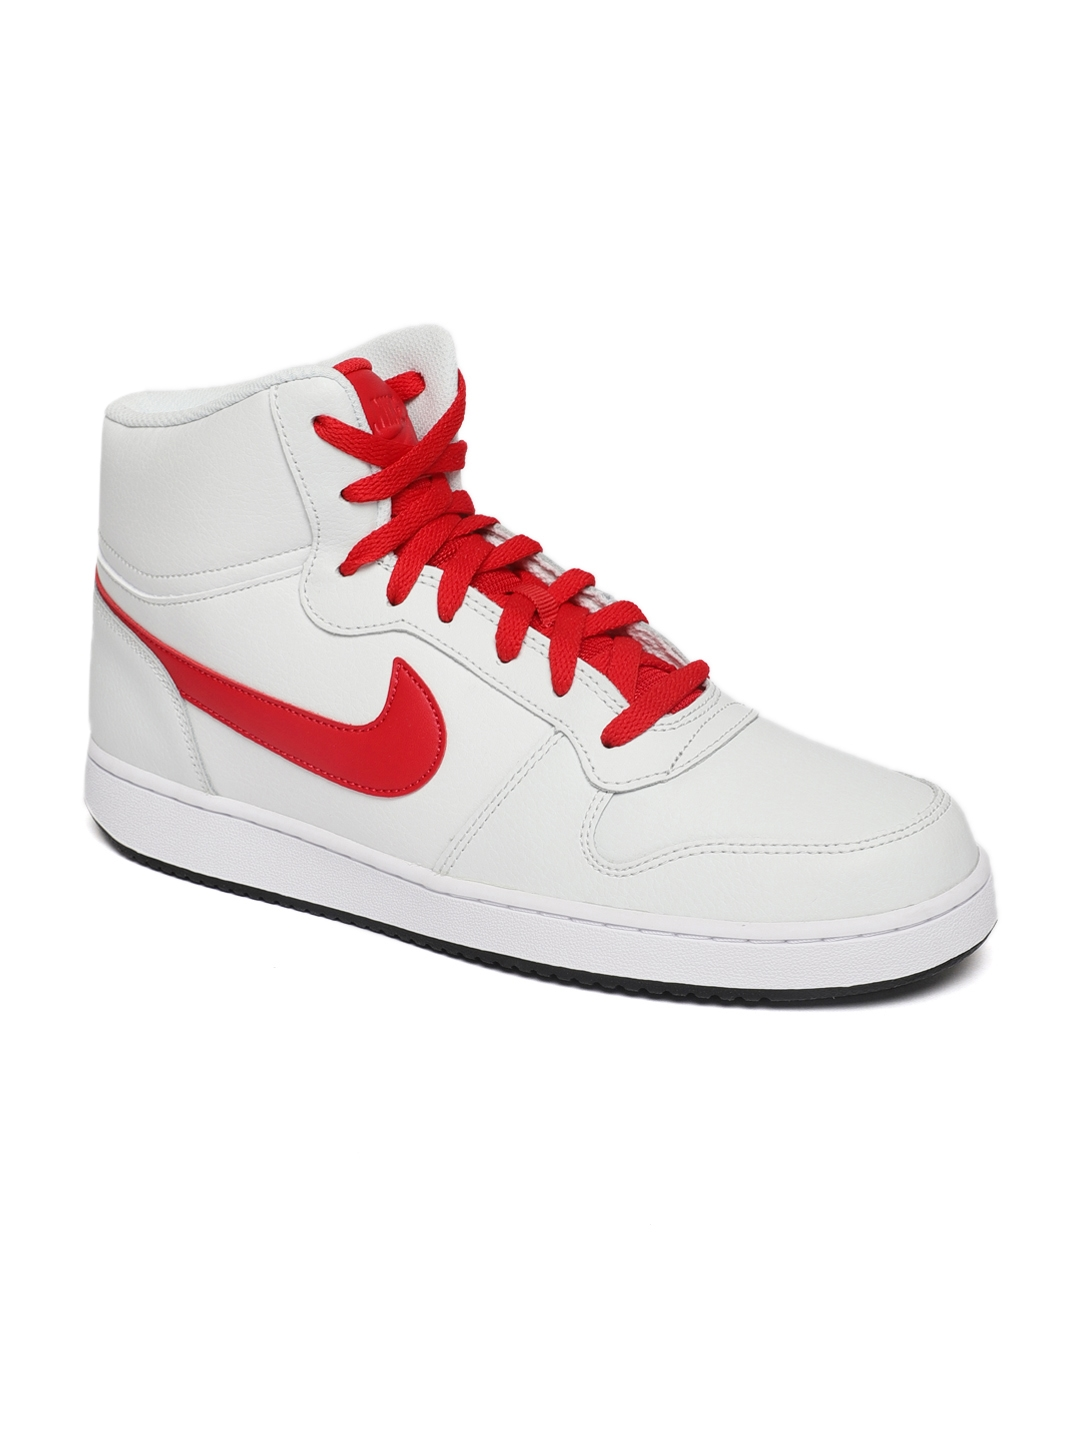 Nike Men White Solid EBERNON Leather Mid,Top Sneakers